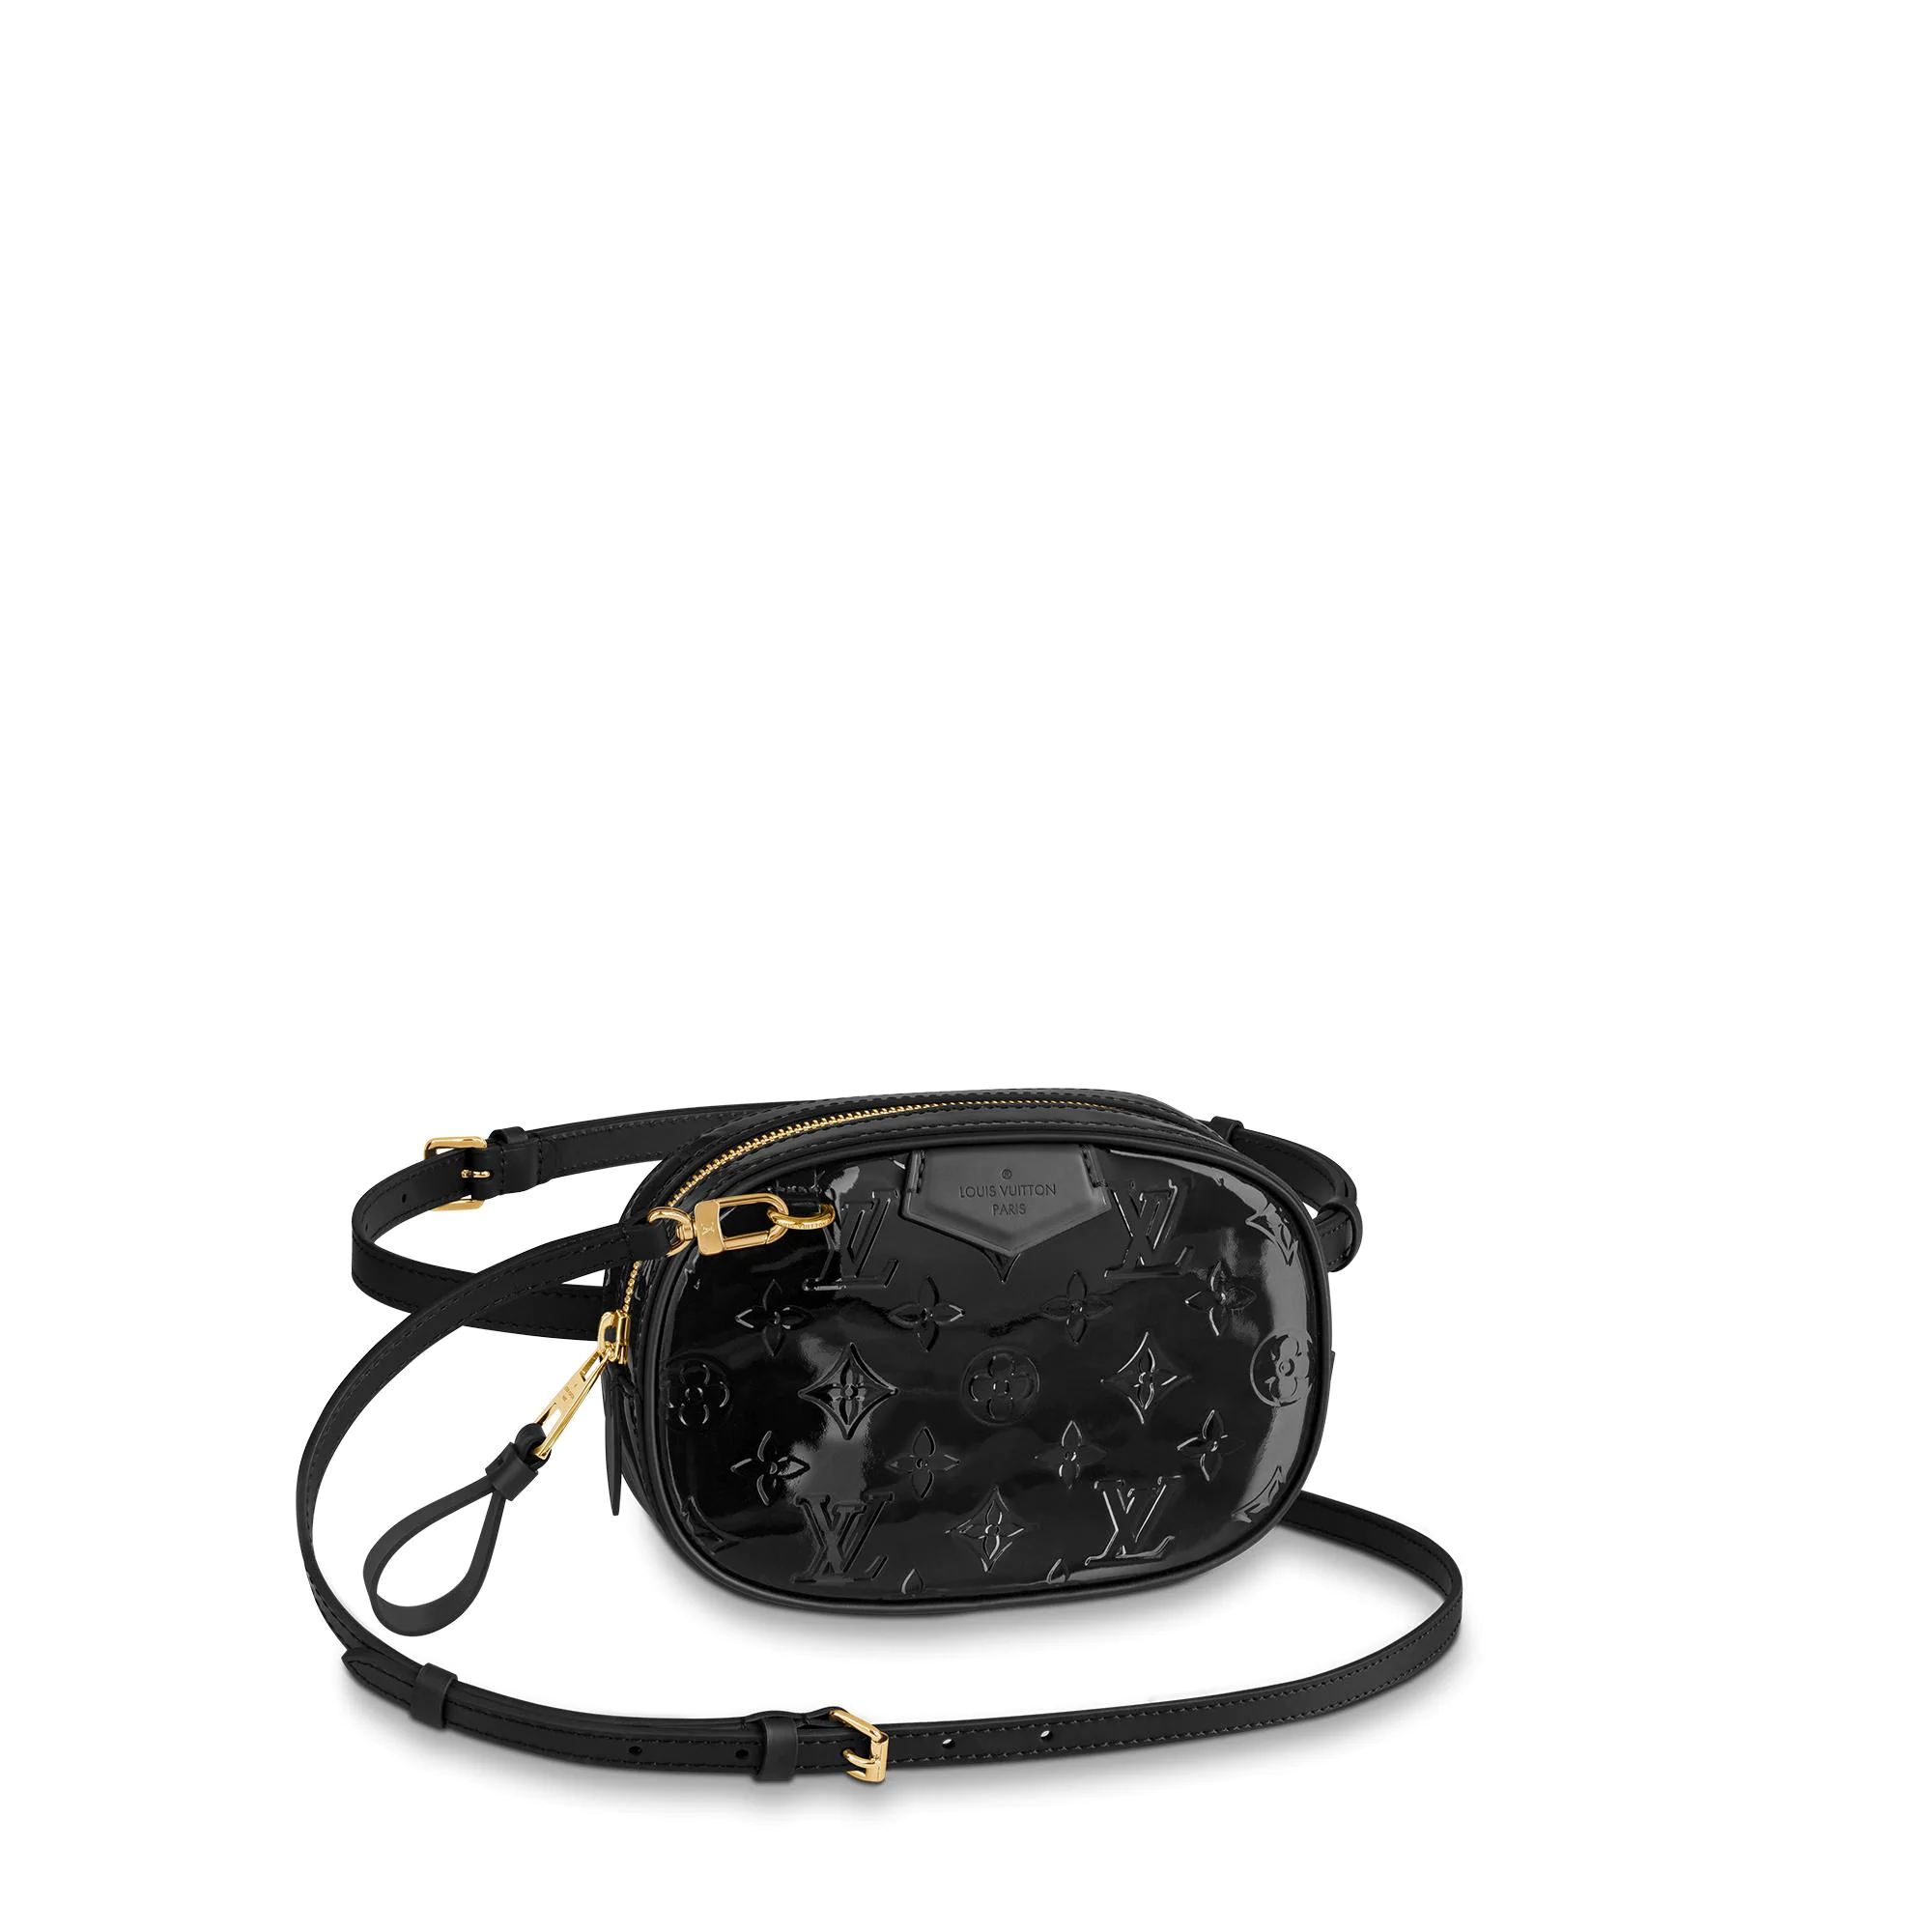 Louis Vuitton Monogram Patent Leather Belt Bag M90531 Black bag